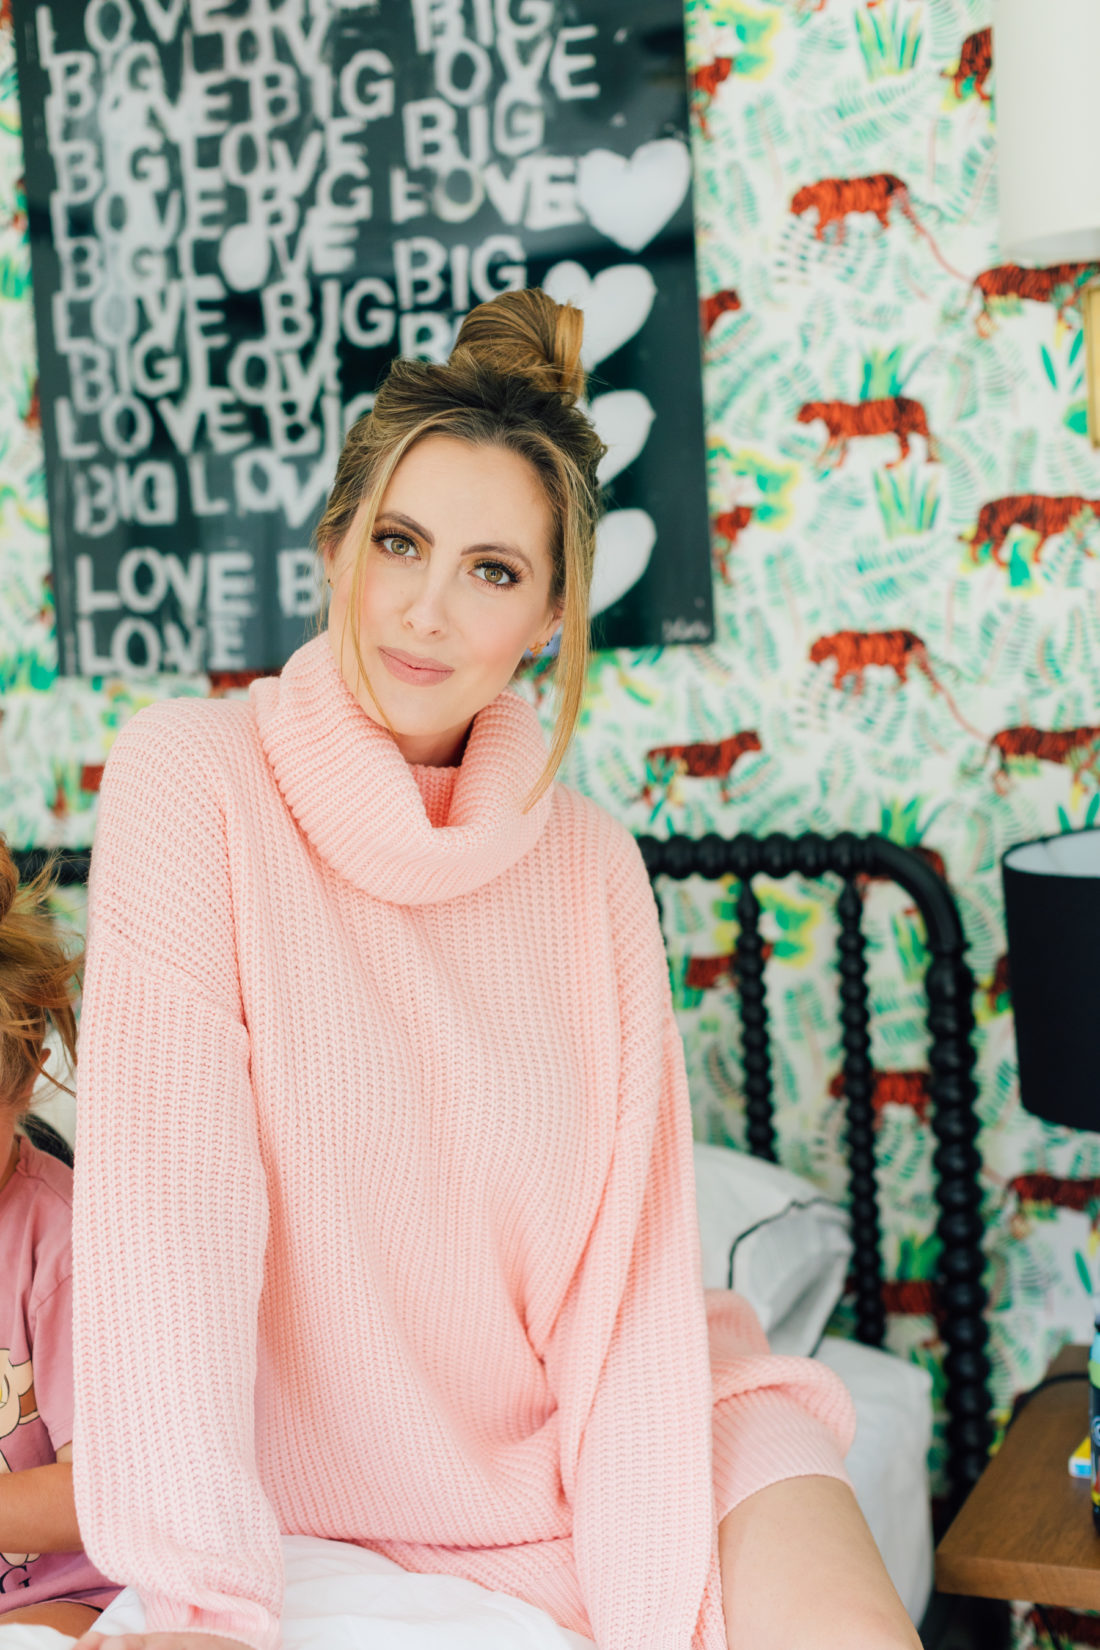 Eva Amurri Martino sits in son Major's bedroom with her kids Marlowe and Major and ponders where the new baby will sleep when he arrives